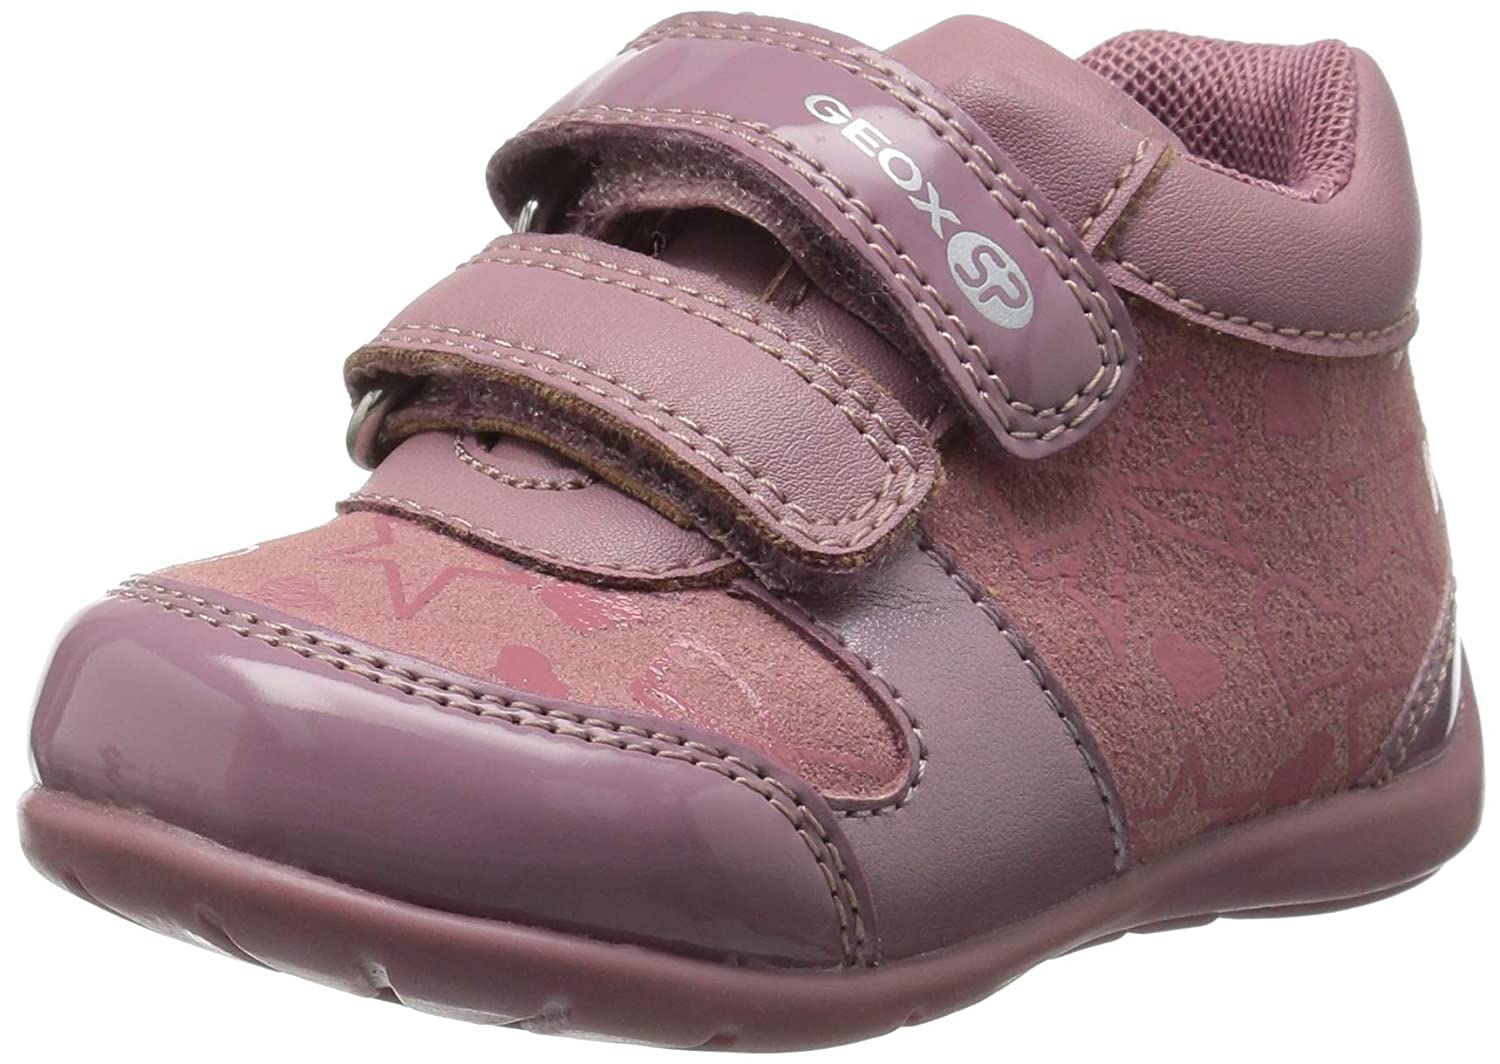 Geox Kids Elthan Girl 1 High Top Velcro Shoe Sneaker